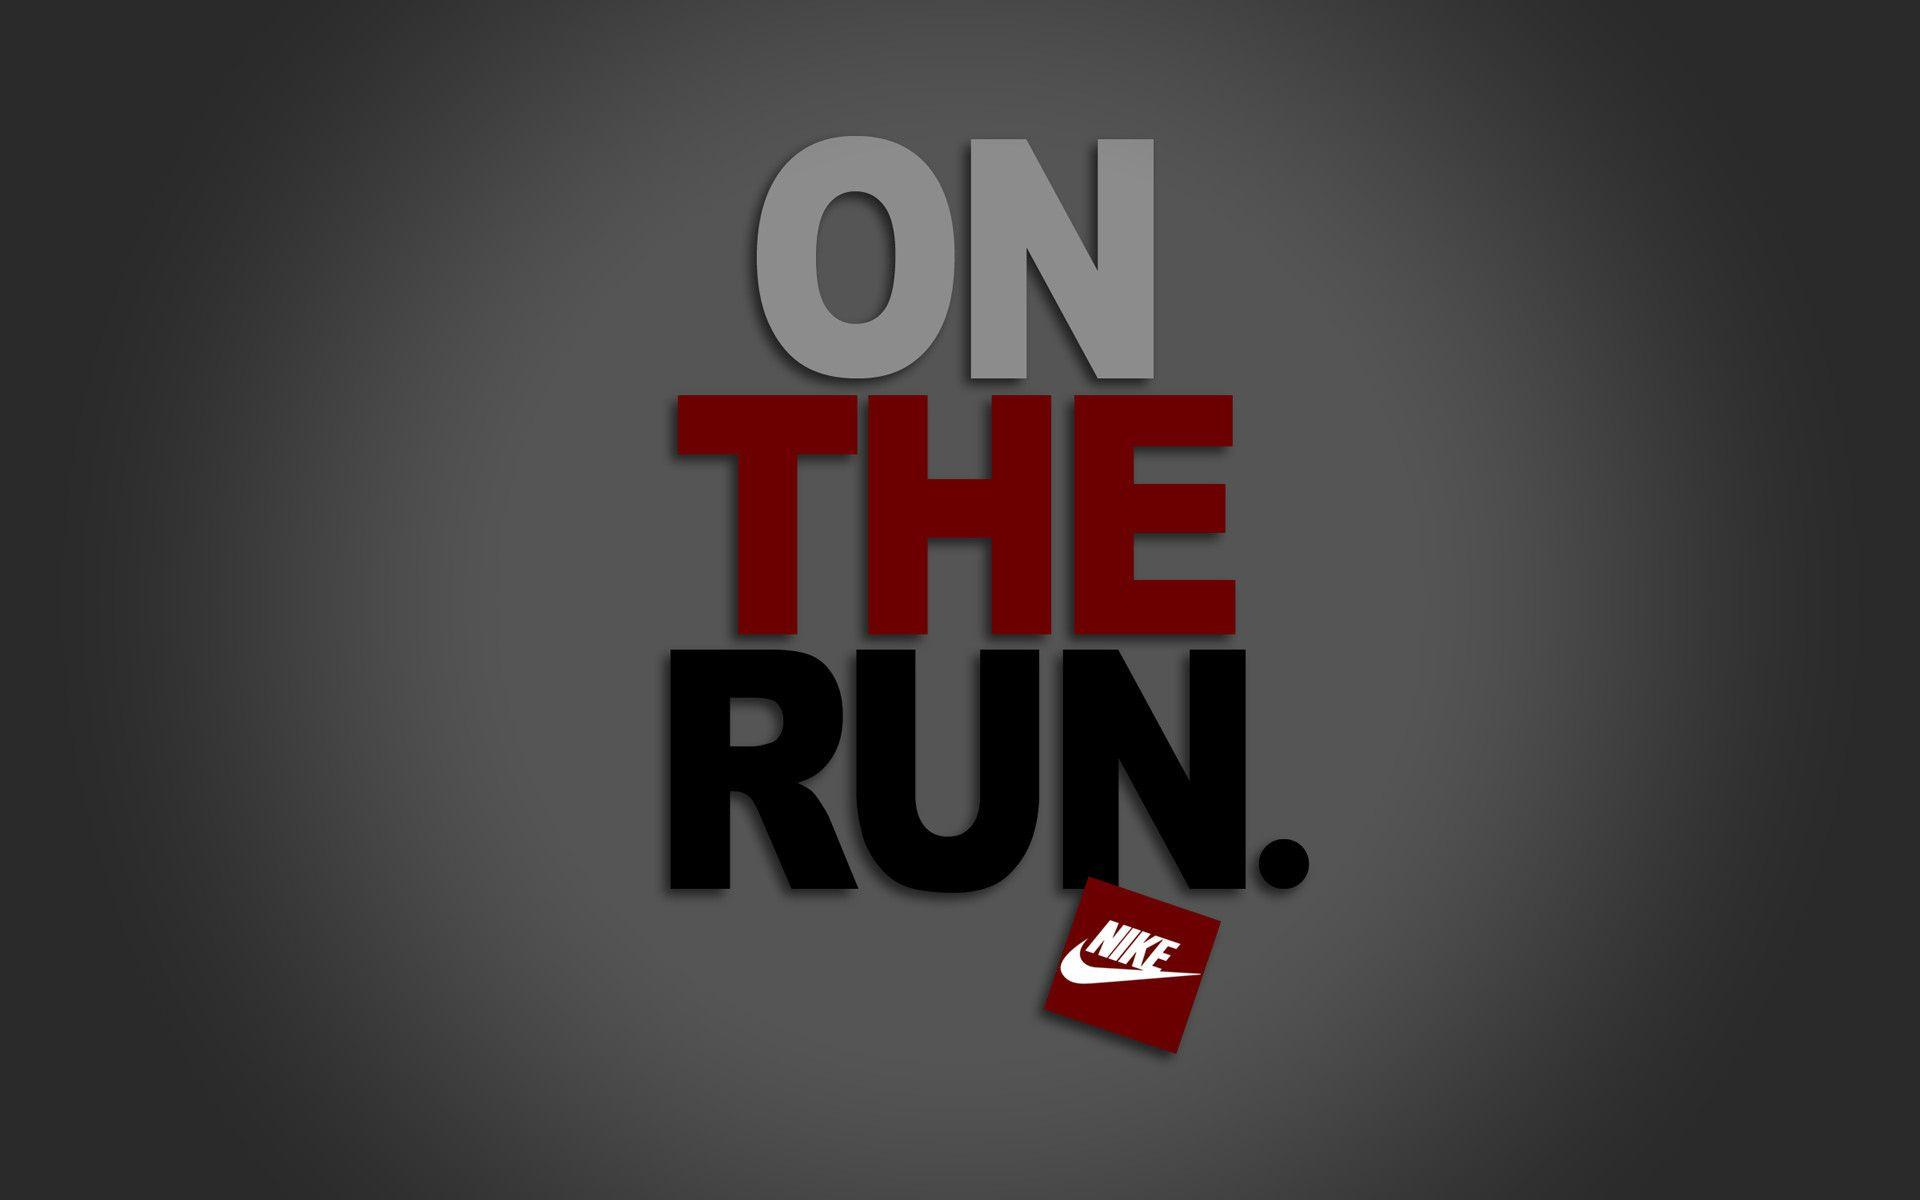 Cool nike wallpapers wallpaper cave wallpapers for cool nike wallpapers for ipad voltagebd Choice Image